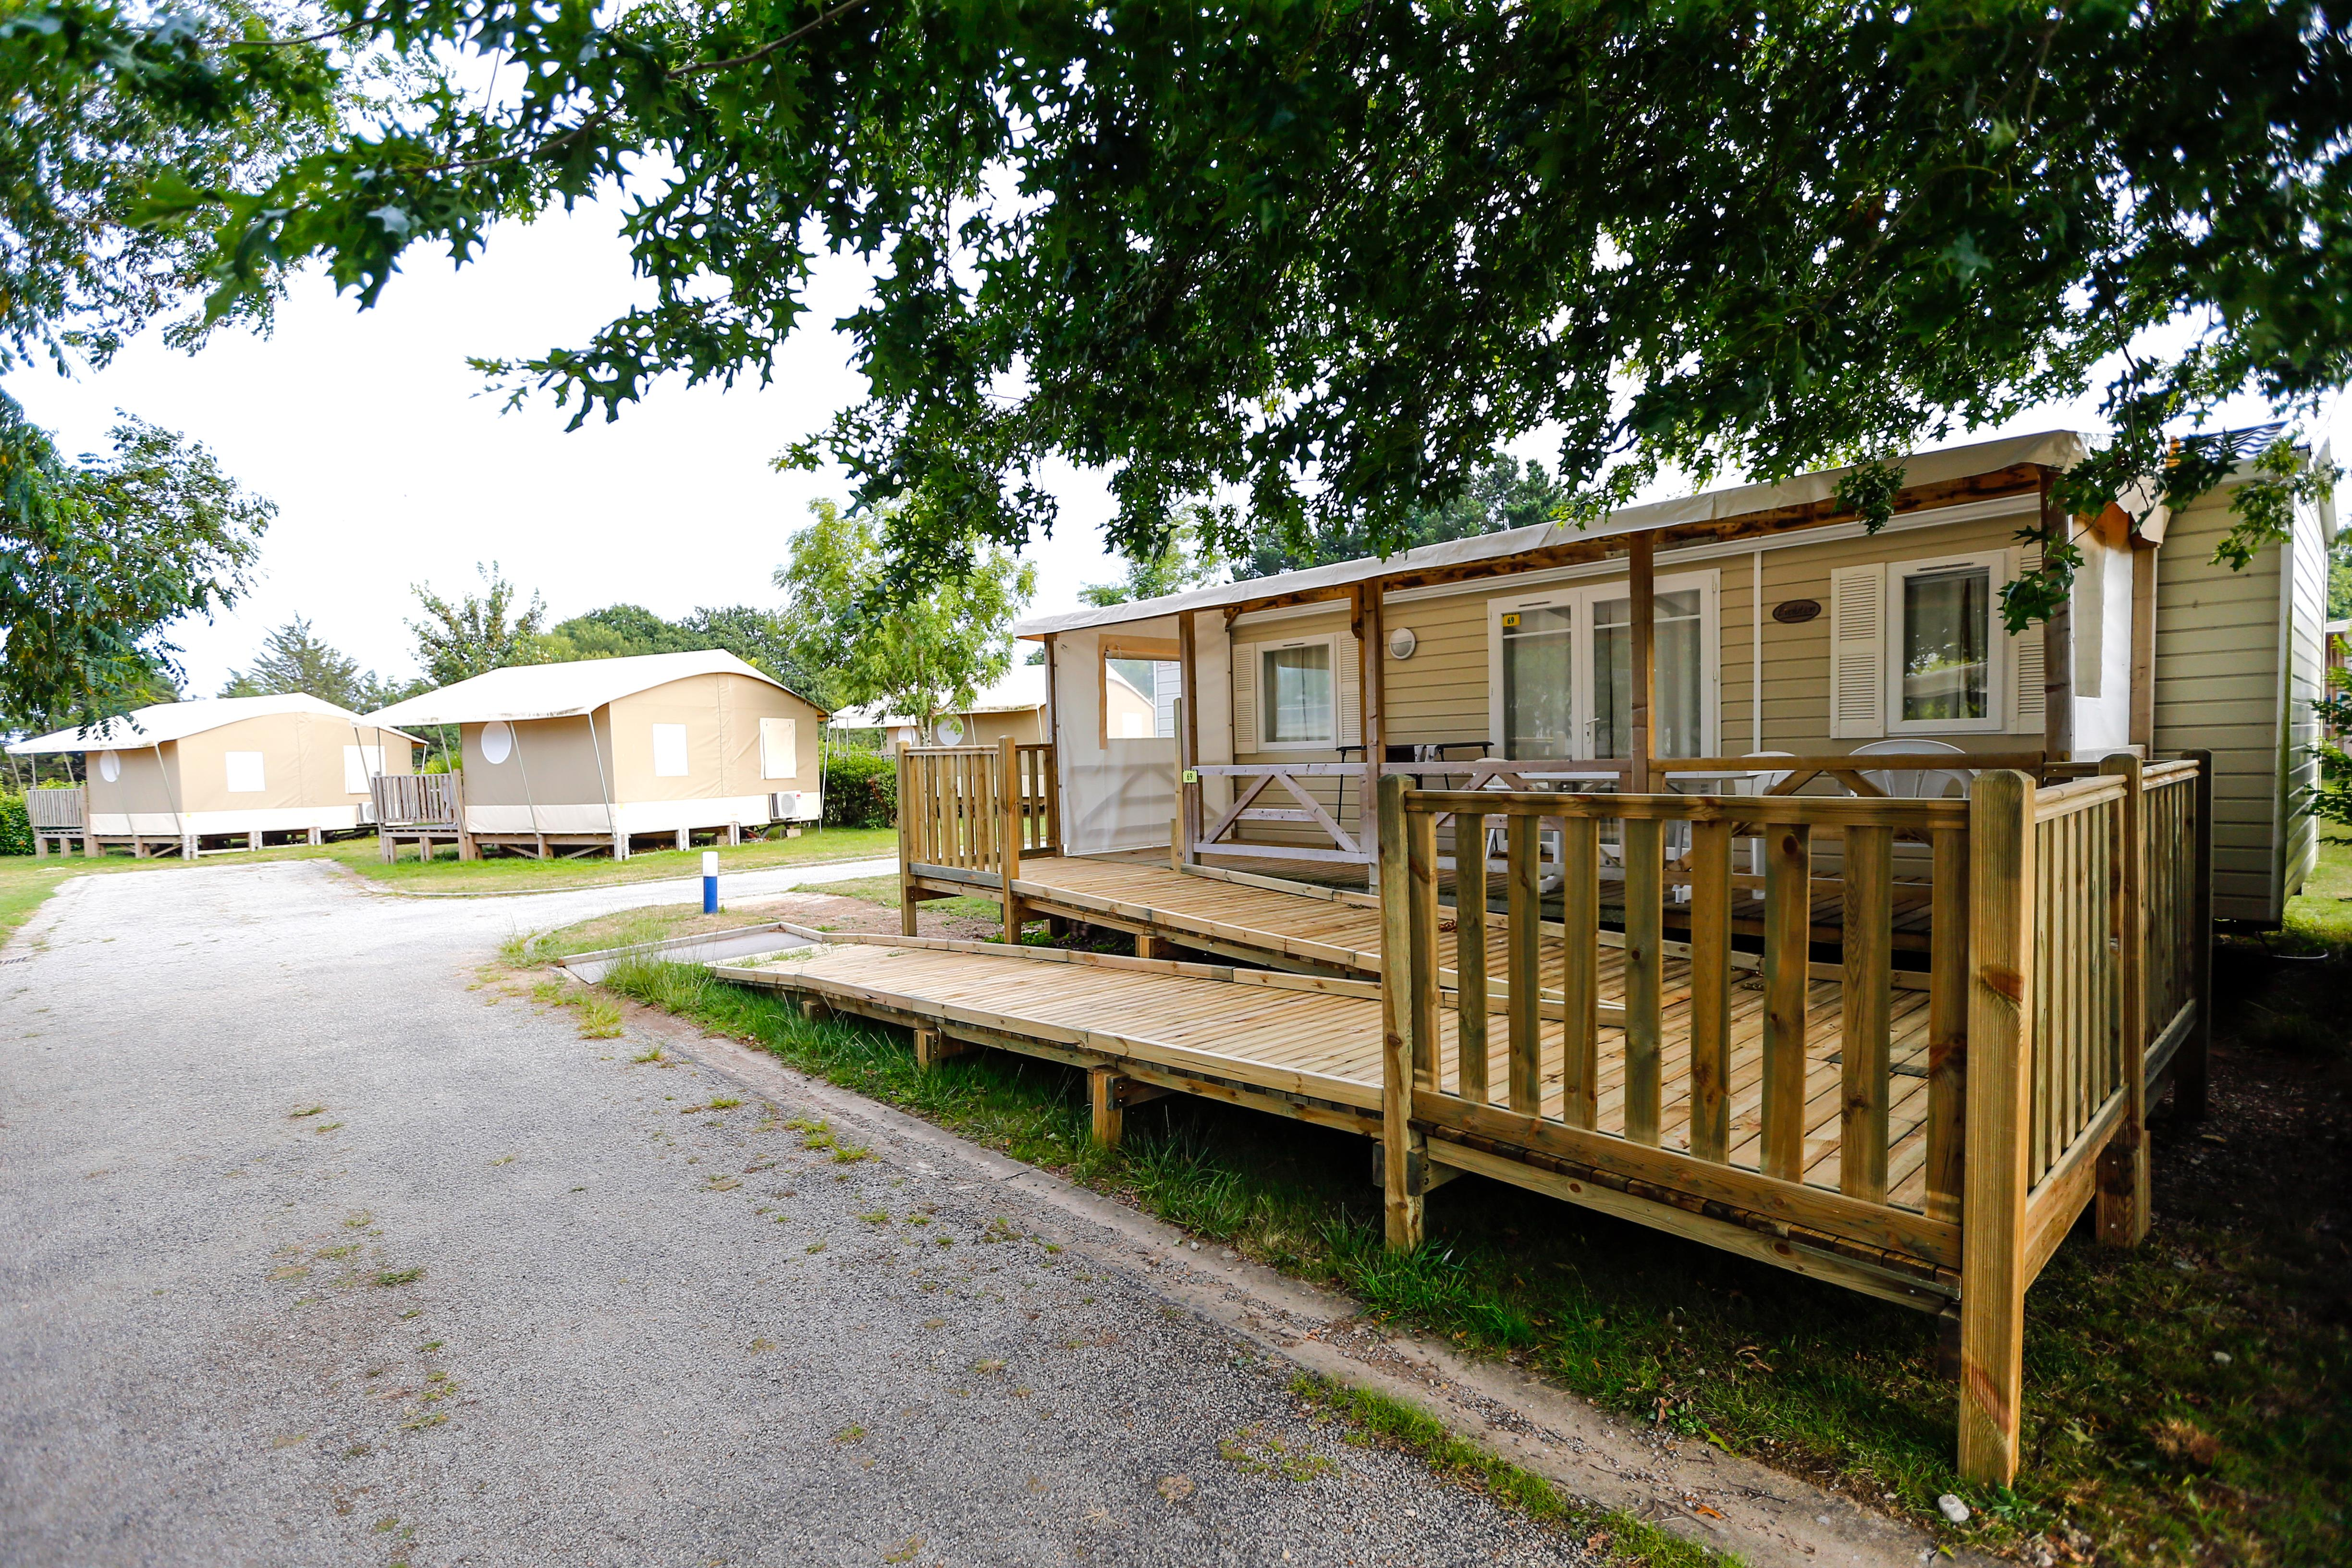 Location - Mobil-Home Accessible Pmr 2 Chambres - Camping Campéole Médoc Plage